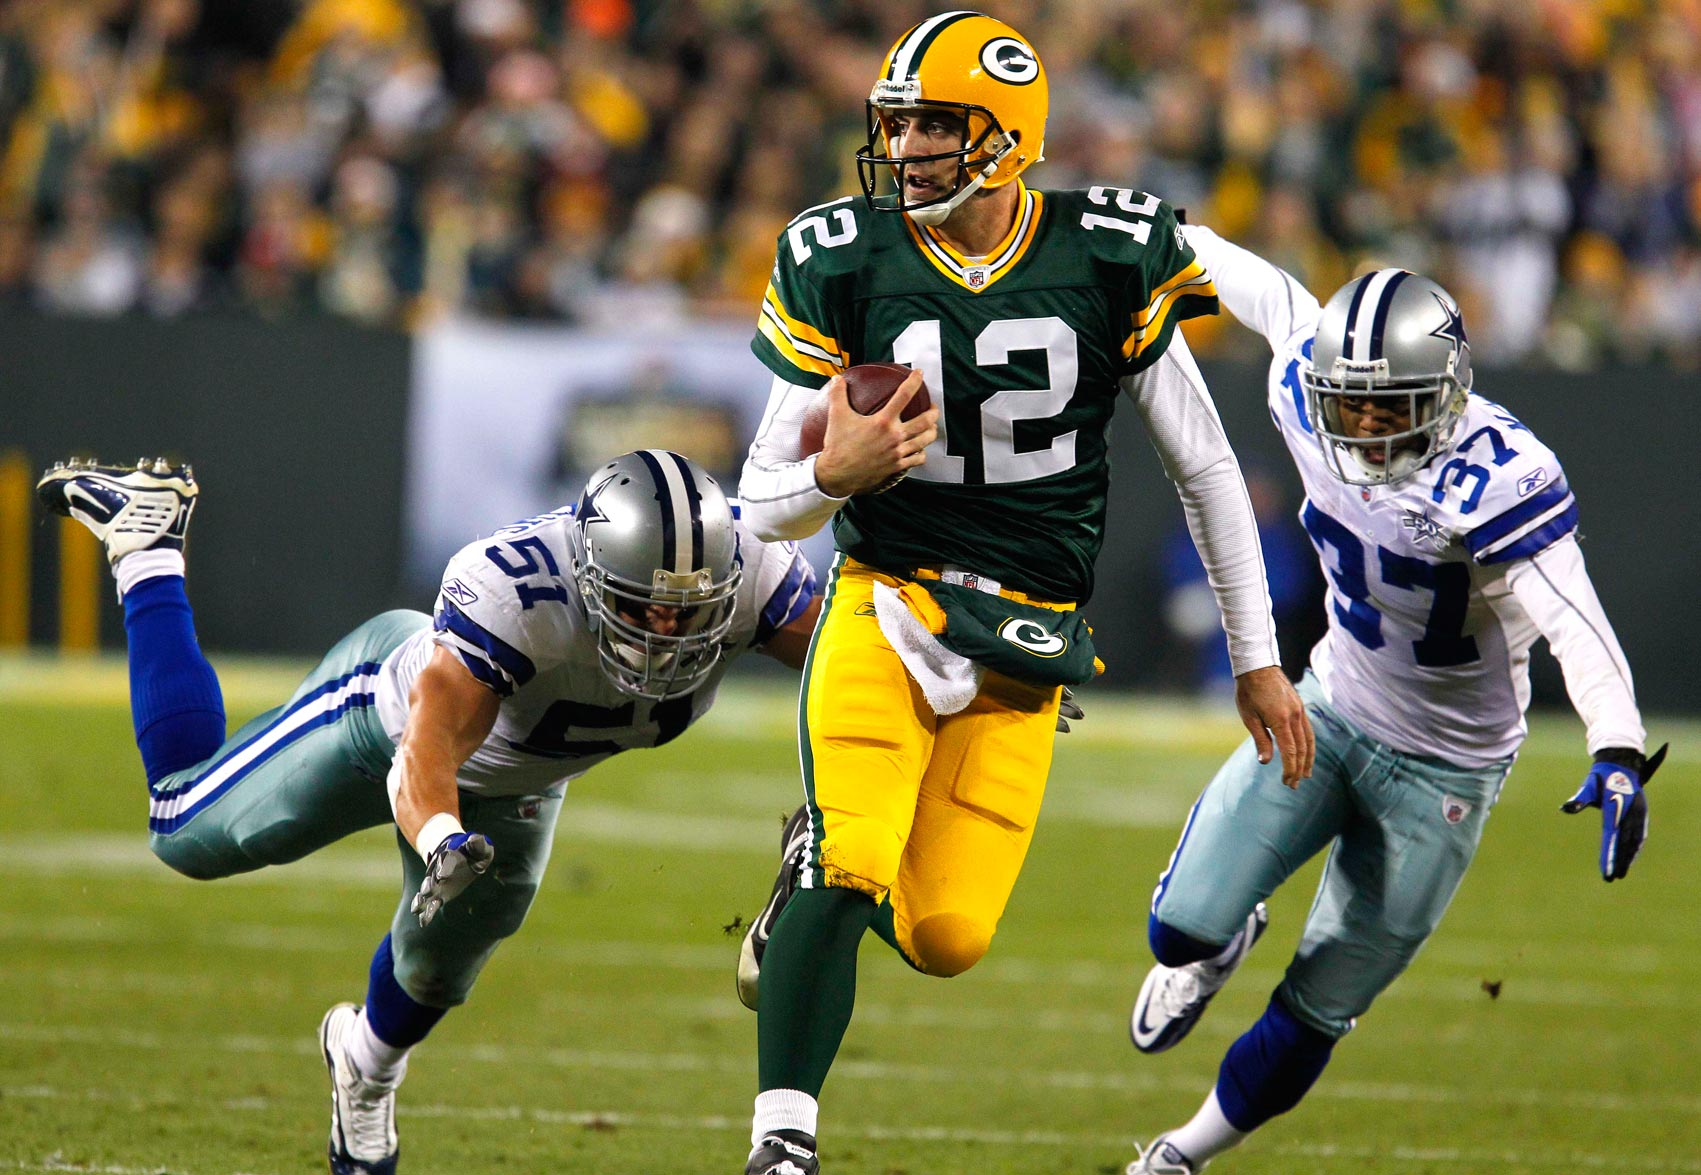 cowboys vs packers 2015 score betting on superbowl